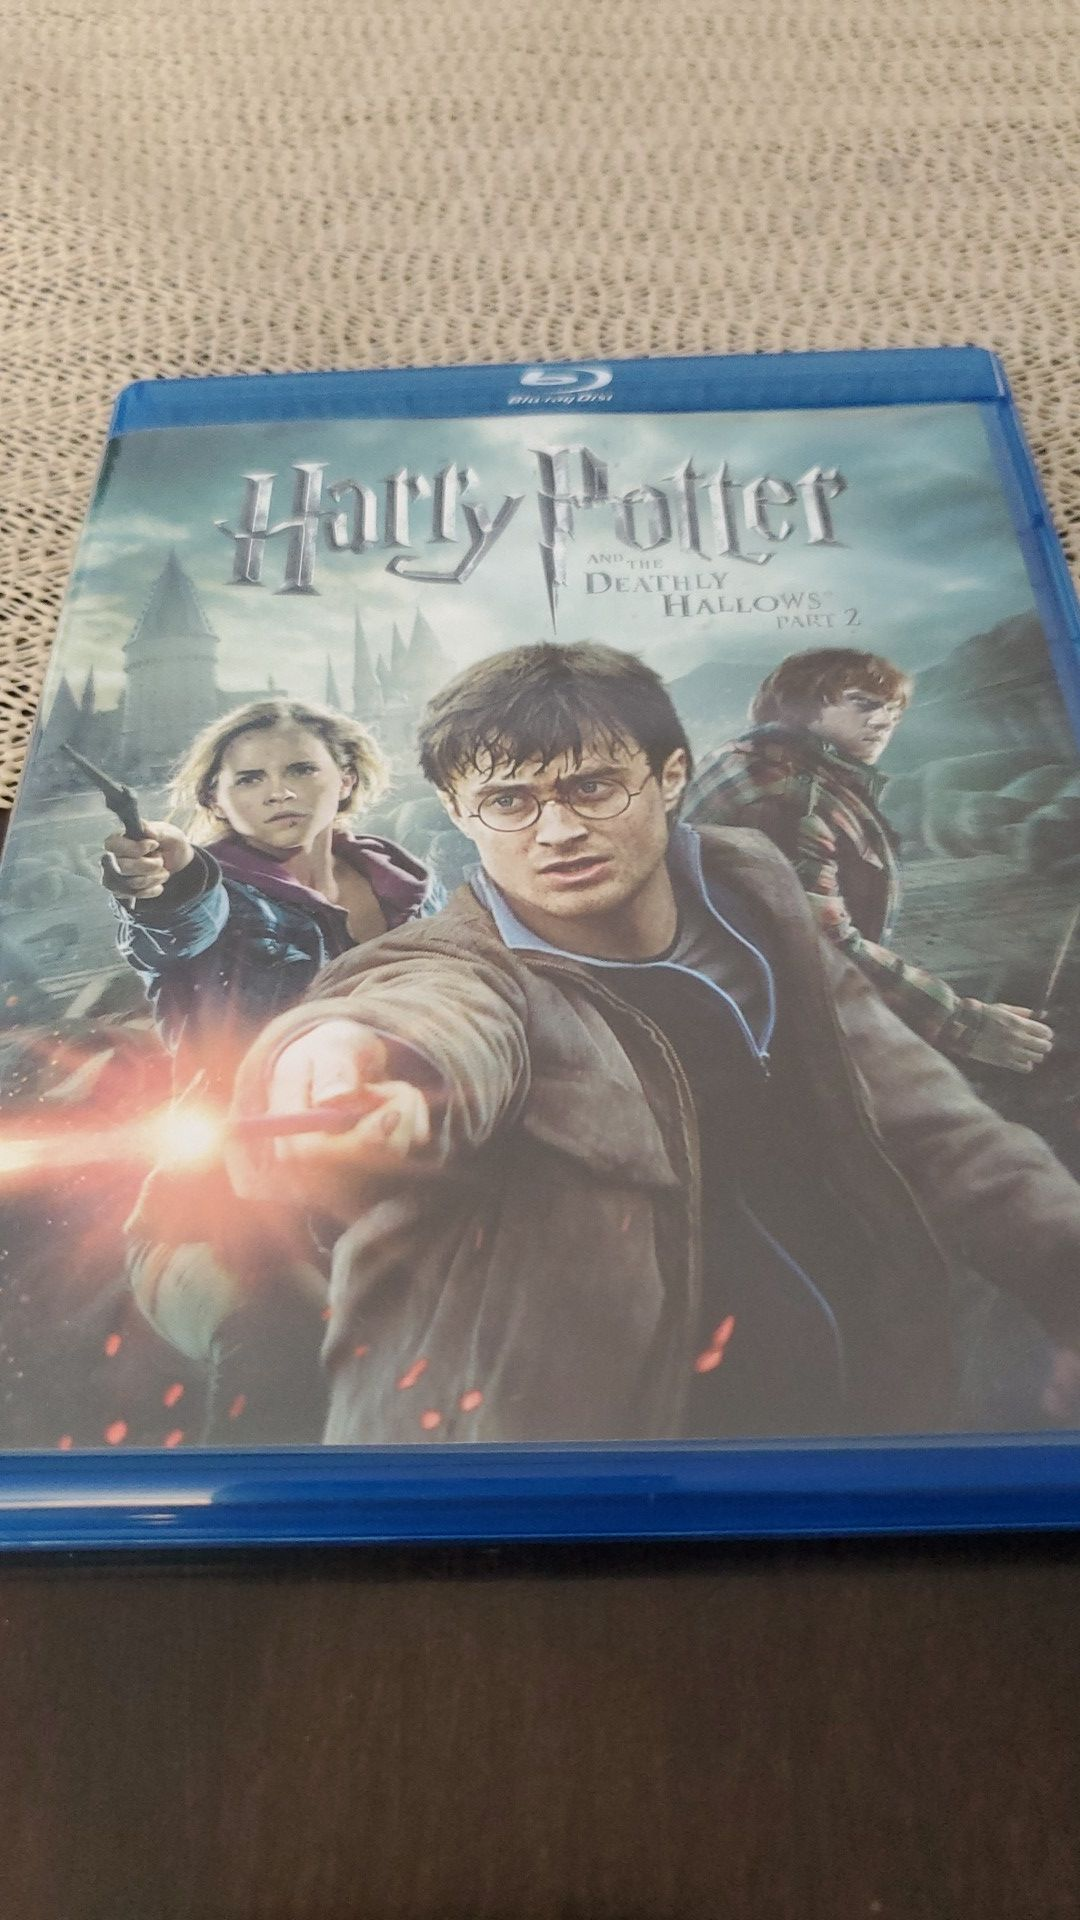 Harry Potter and the Deathly Hallows Part 2 (blue ray) DVD